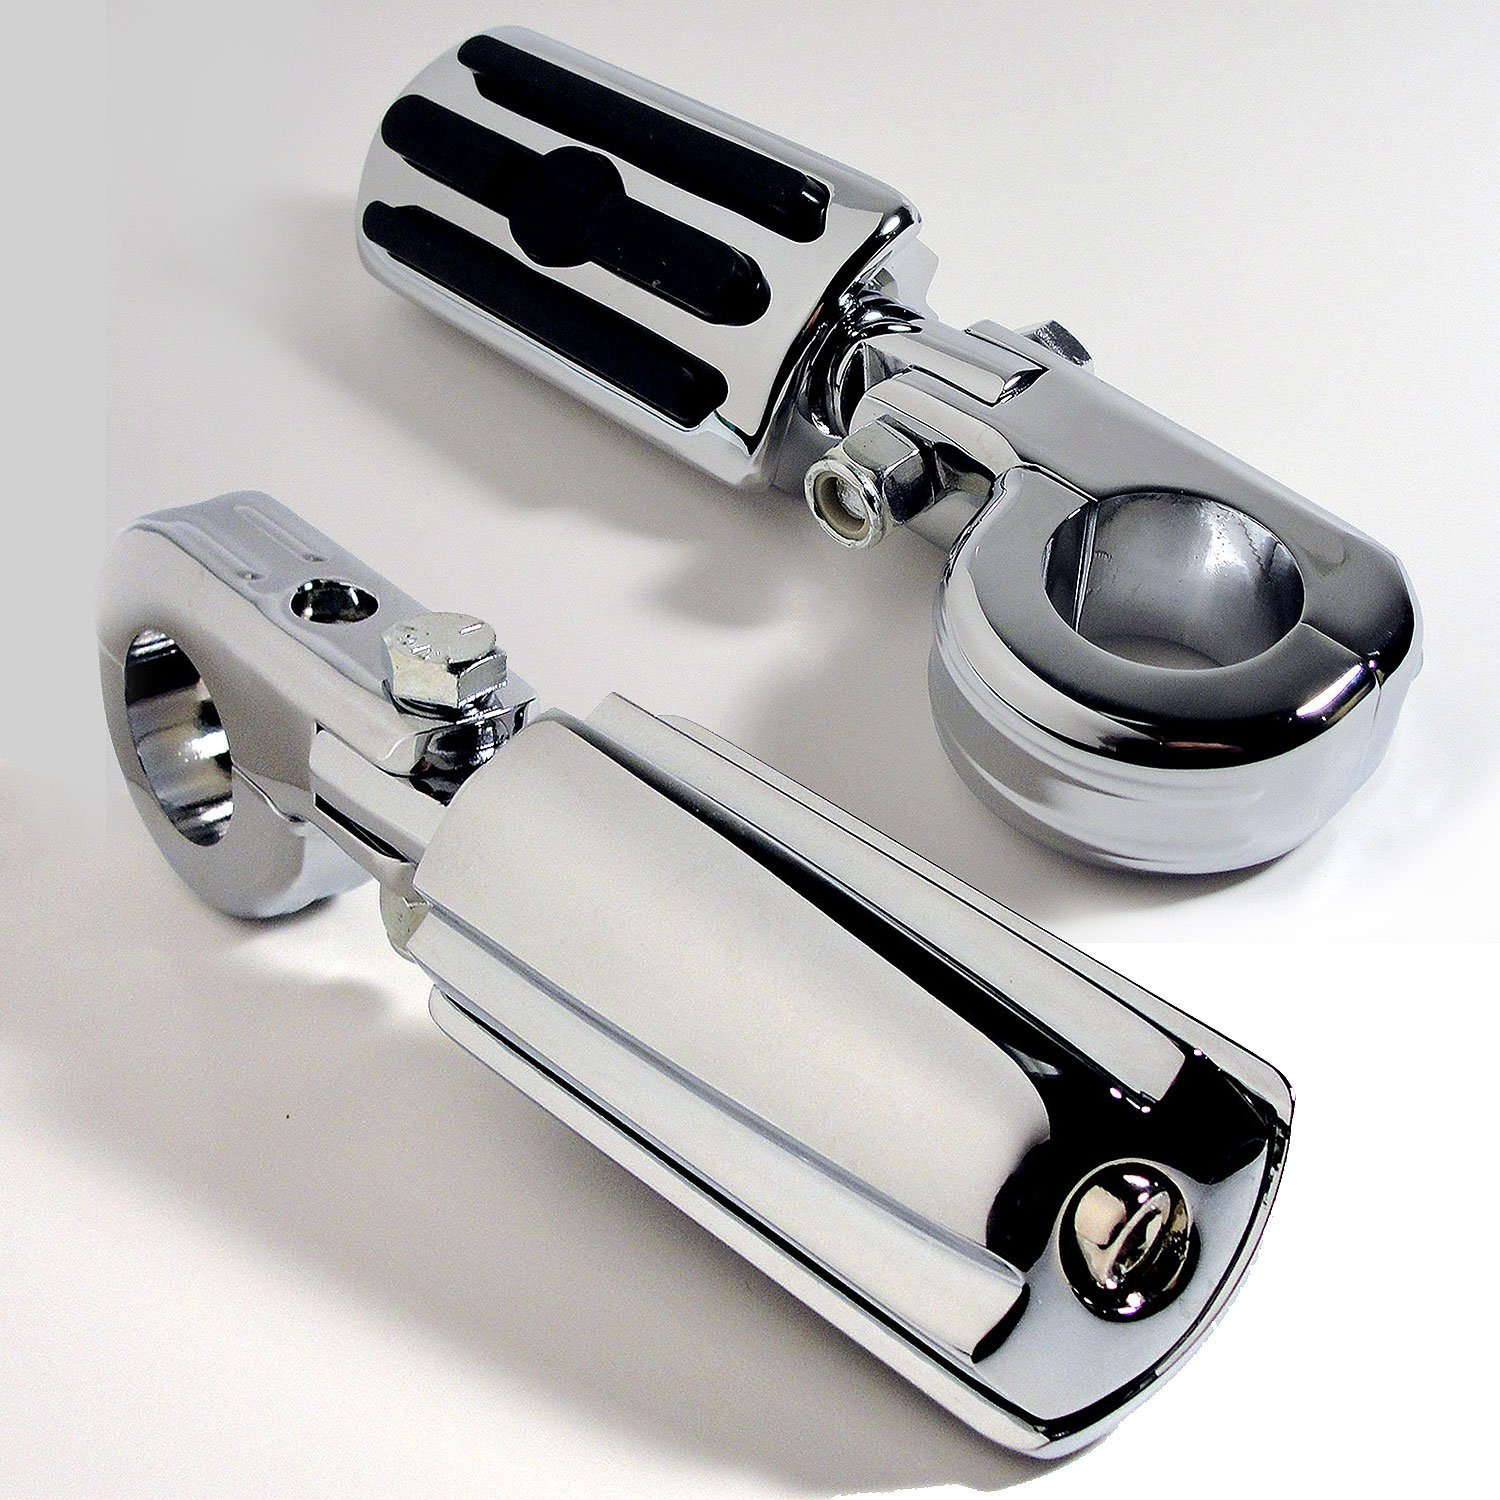 Hoosier Garage - Top Quality- Highway Pegs Foot Rests to fit 1.25'' Engine Guard - Compatible with Harley-Davidson Road Glide, Electra Glide, Road King, Street Glide - Priority Mail Shipping by Hoosier Garage